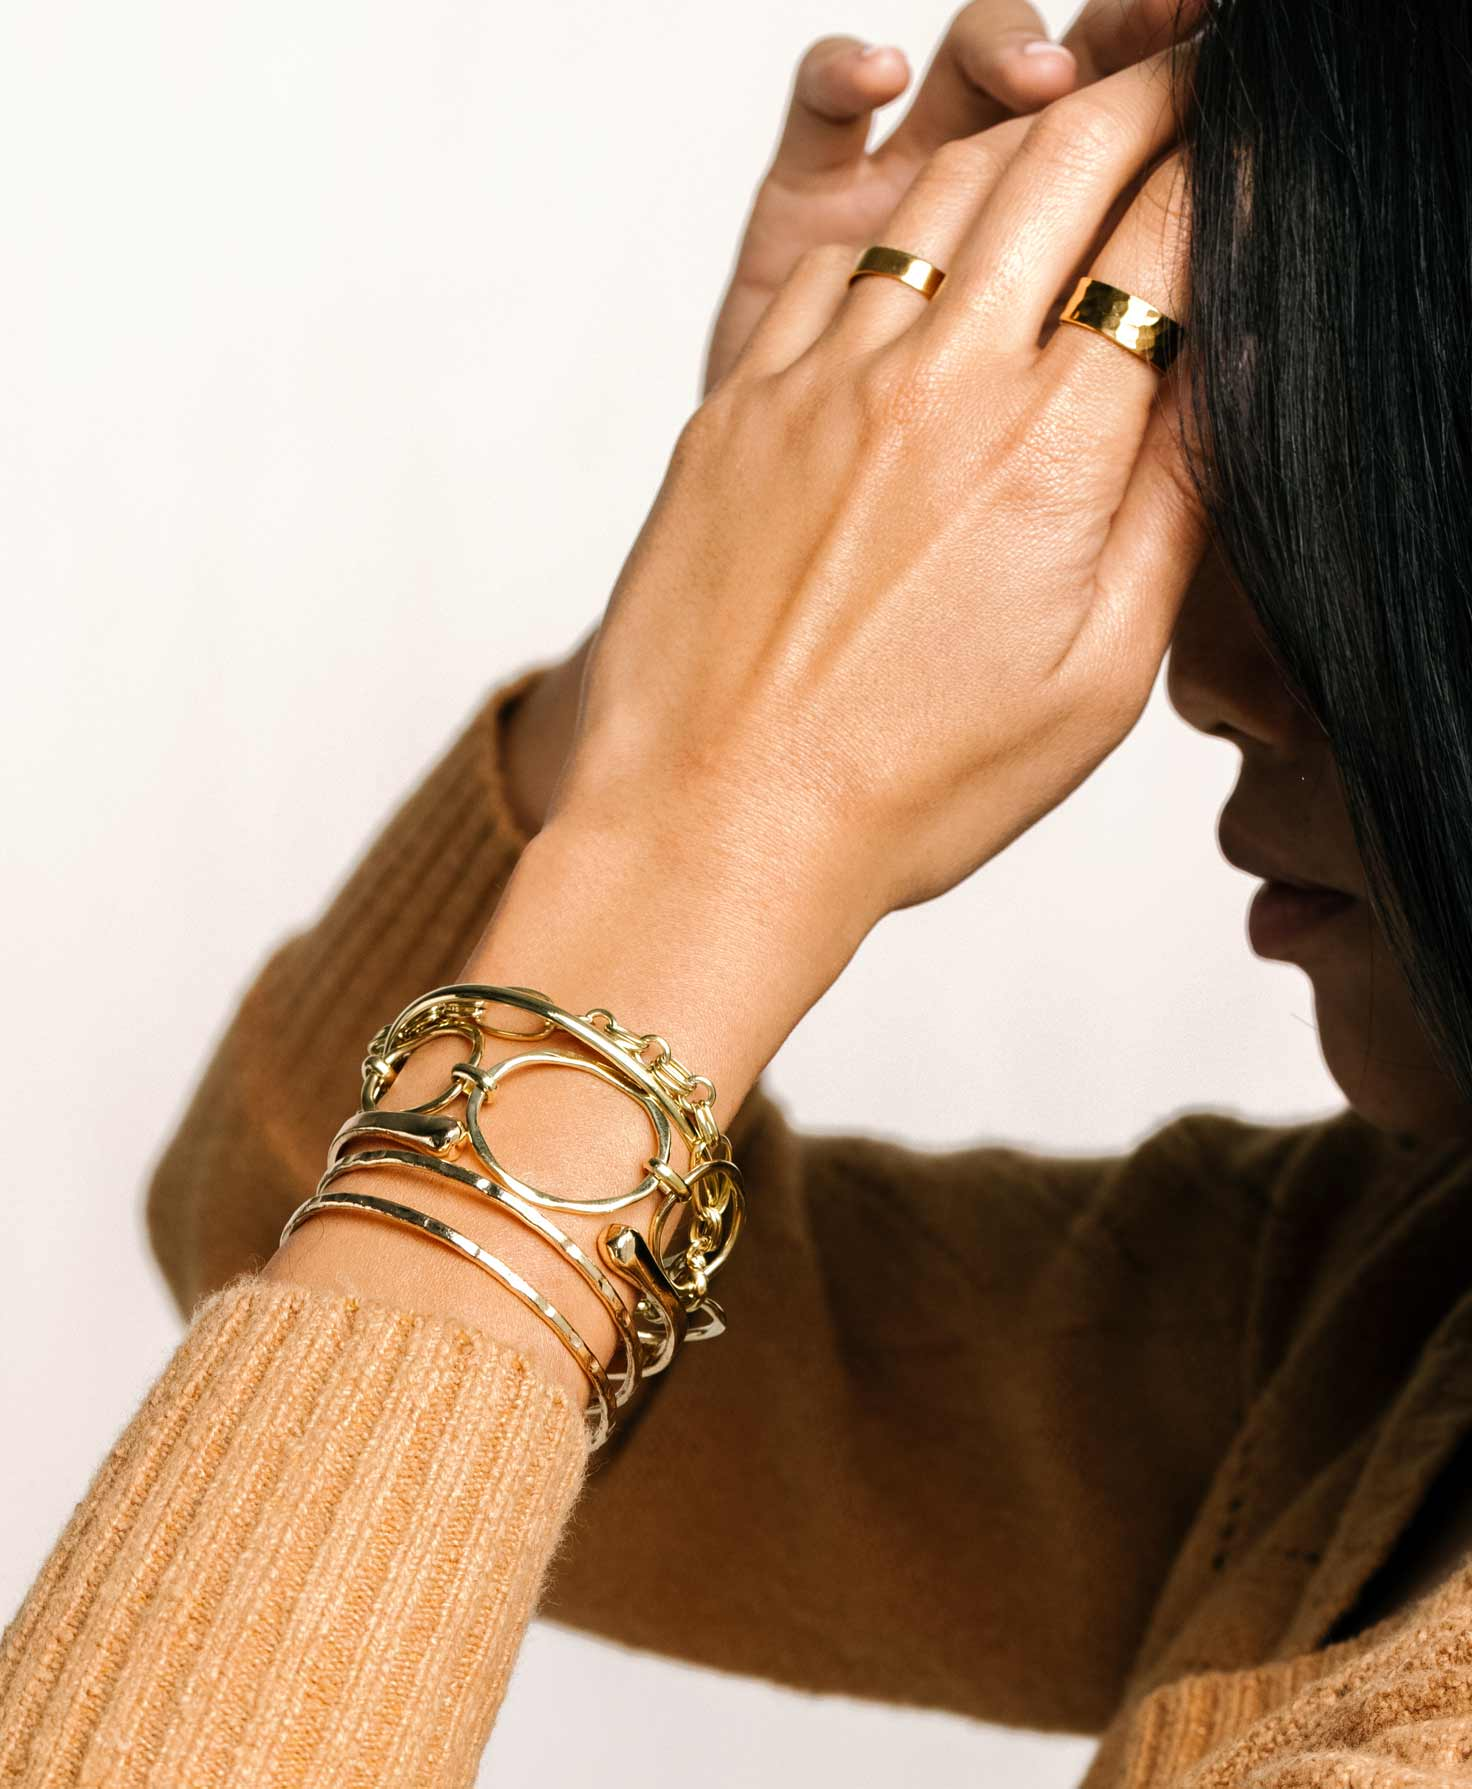 A looping video shows a woman's arm with a stack of shining golden bracelets, including the Shindig Bracelet, Pathway Bracelet, Loyalist Cuff, and Open Space Cuff.